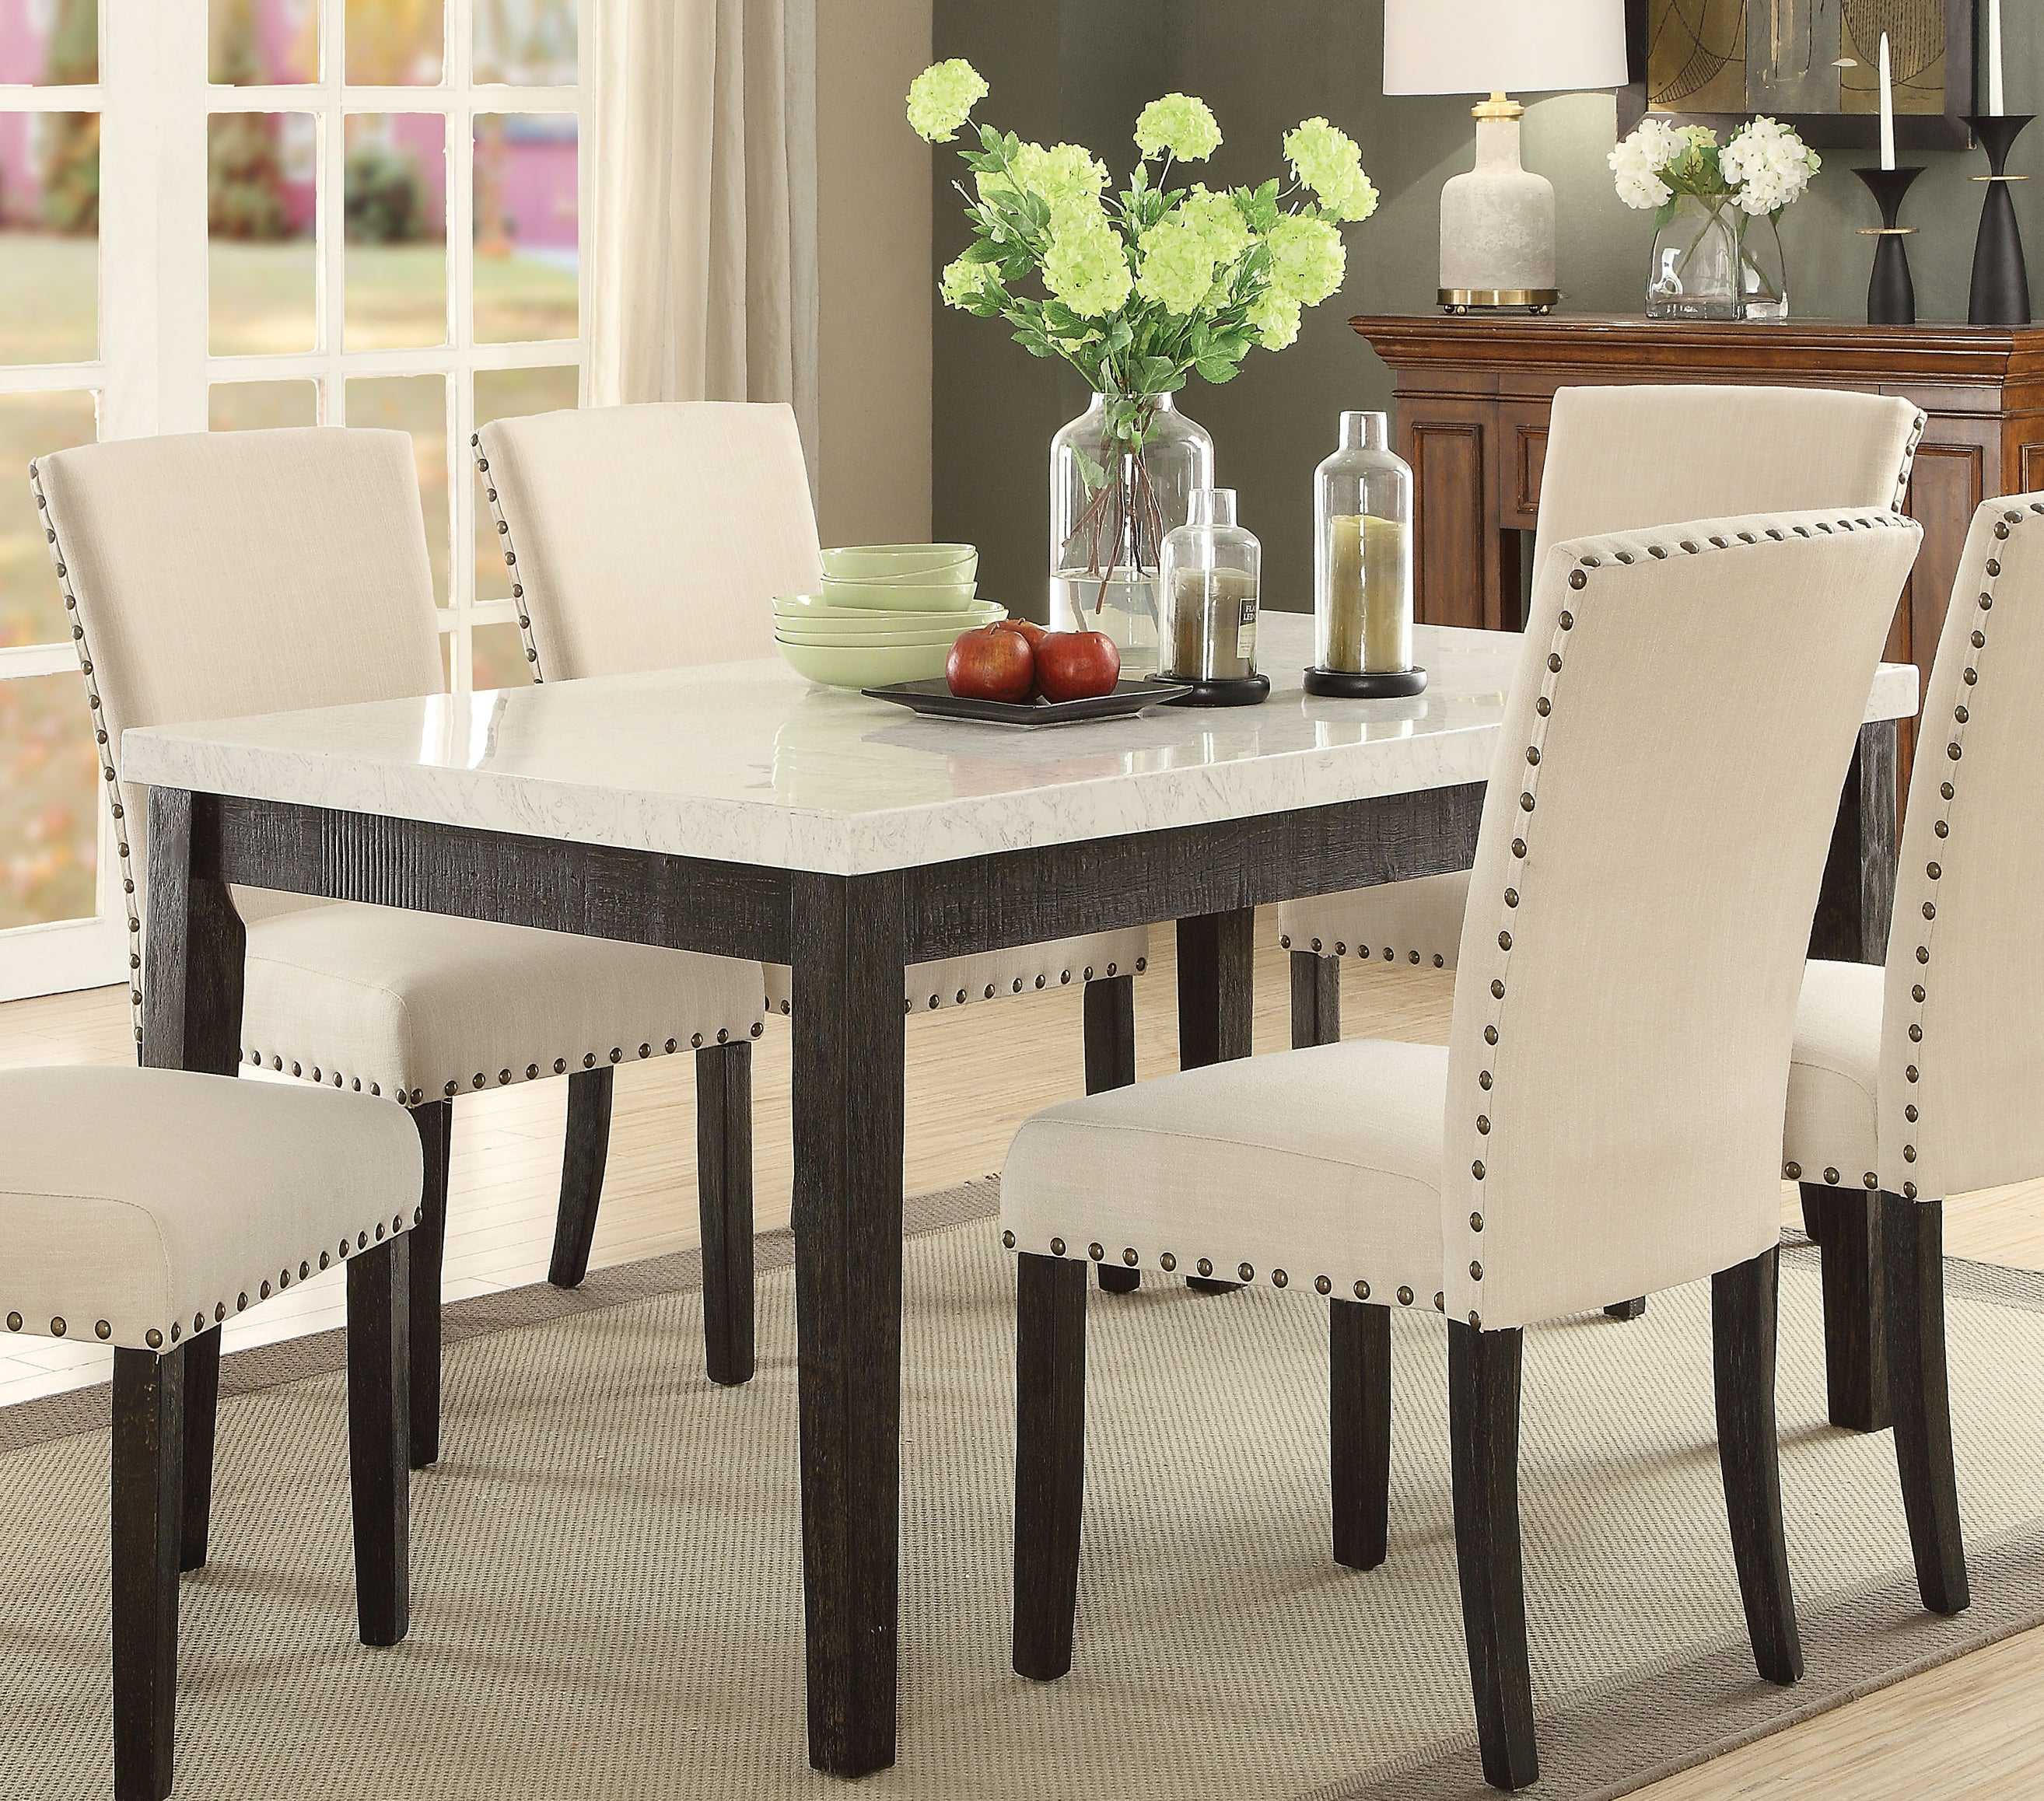 Acme 72850 Nolan White Faux Marble Top Dining Table